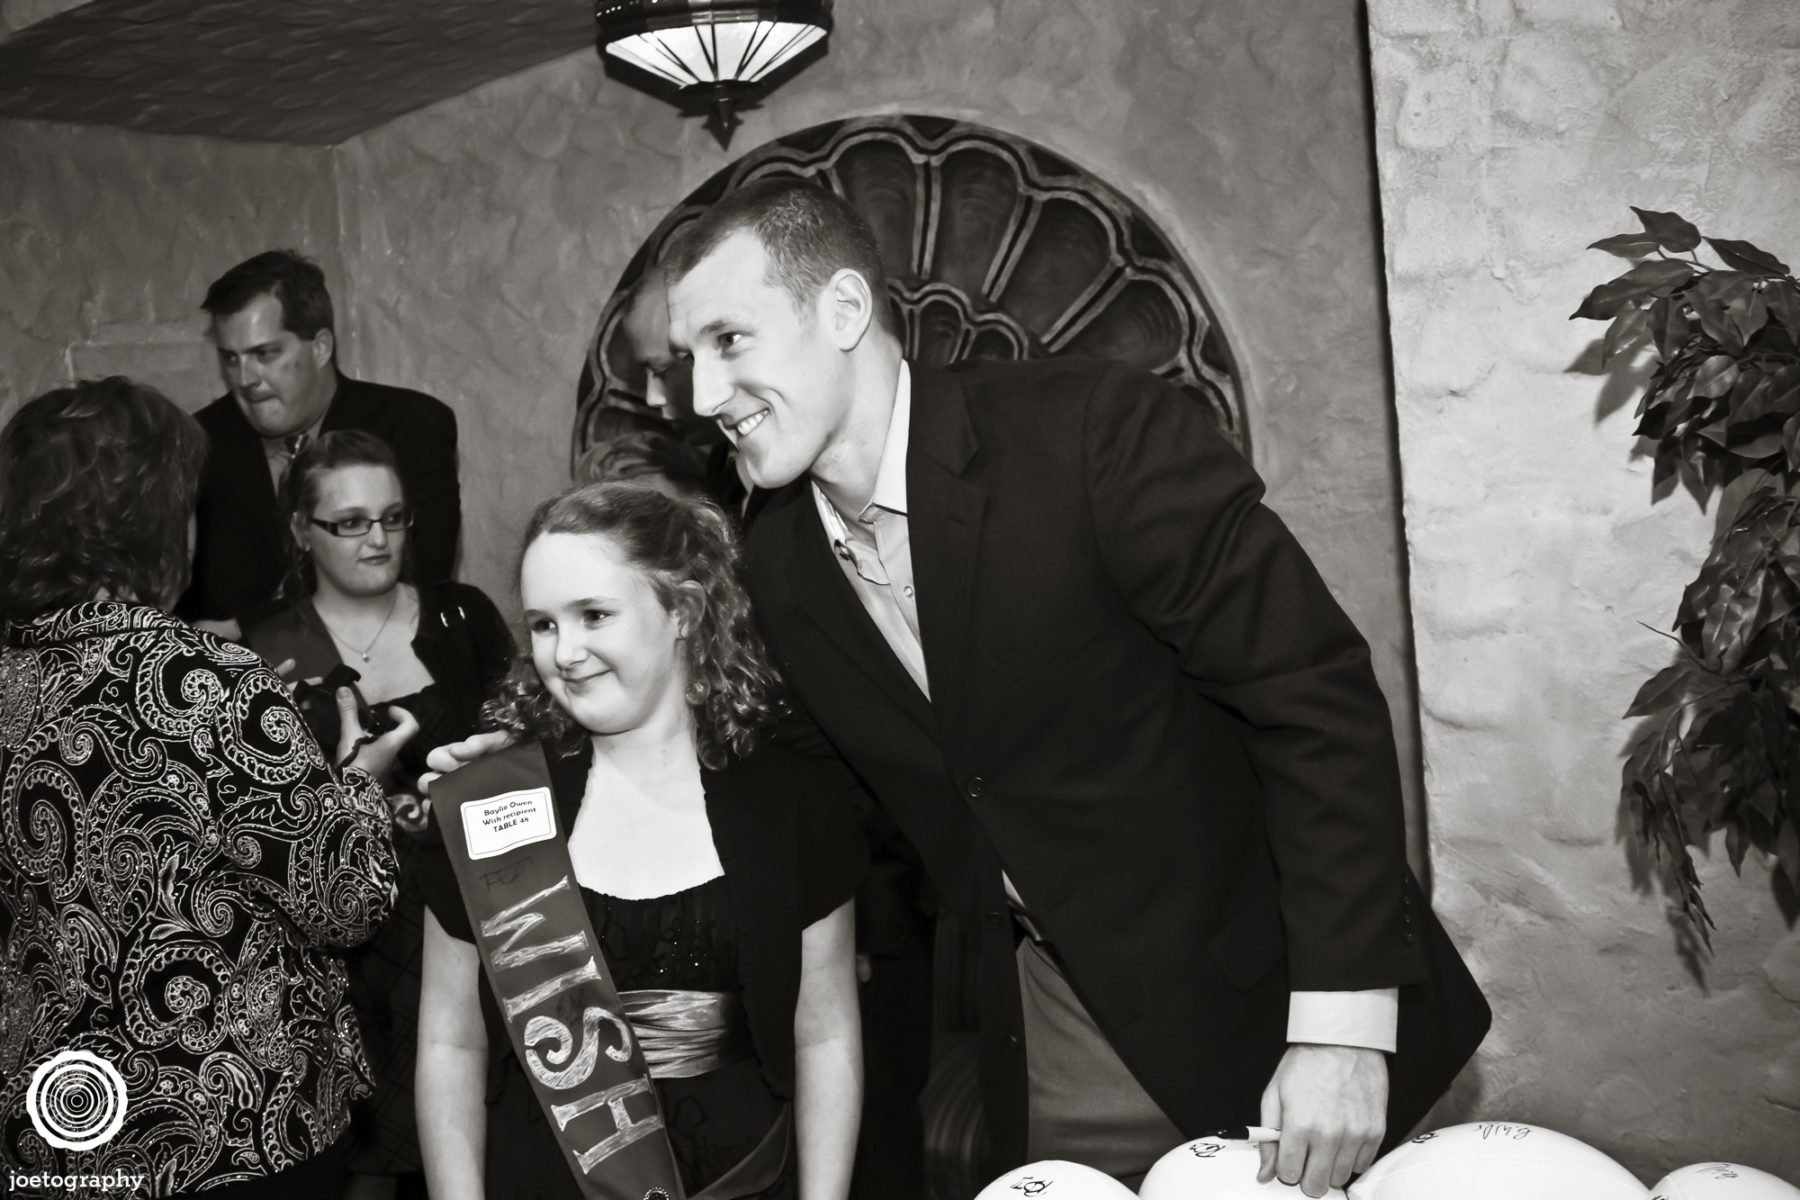 2010-Make-a-Wish-Fundraising-Event-Indianapolis-Indiana-5